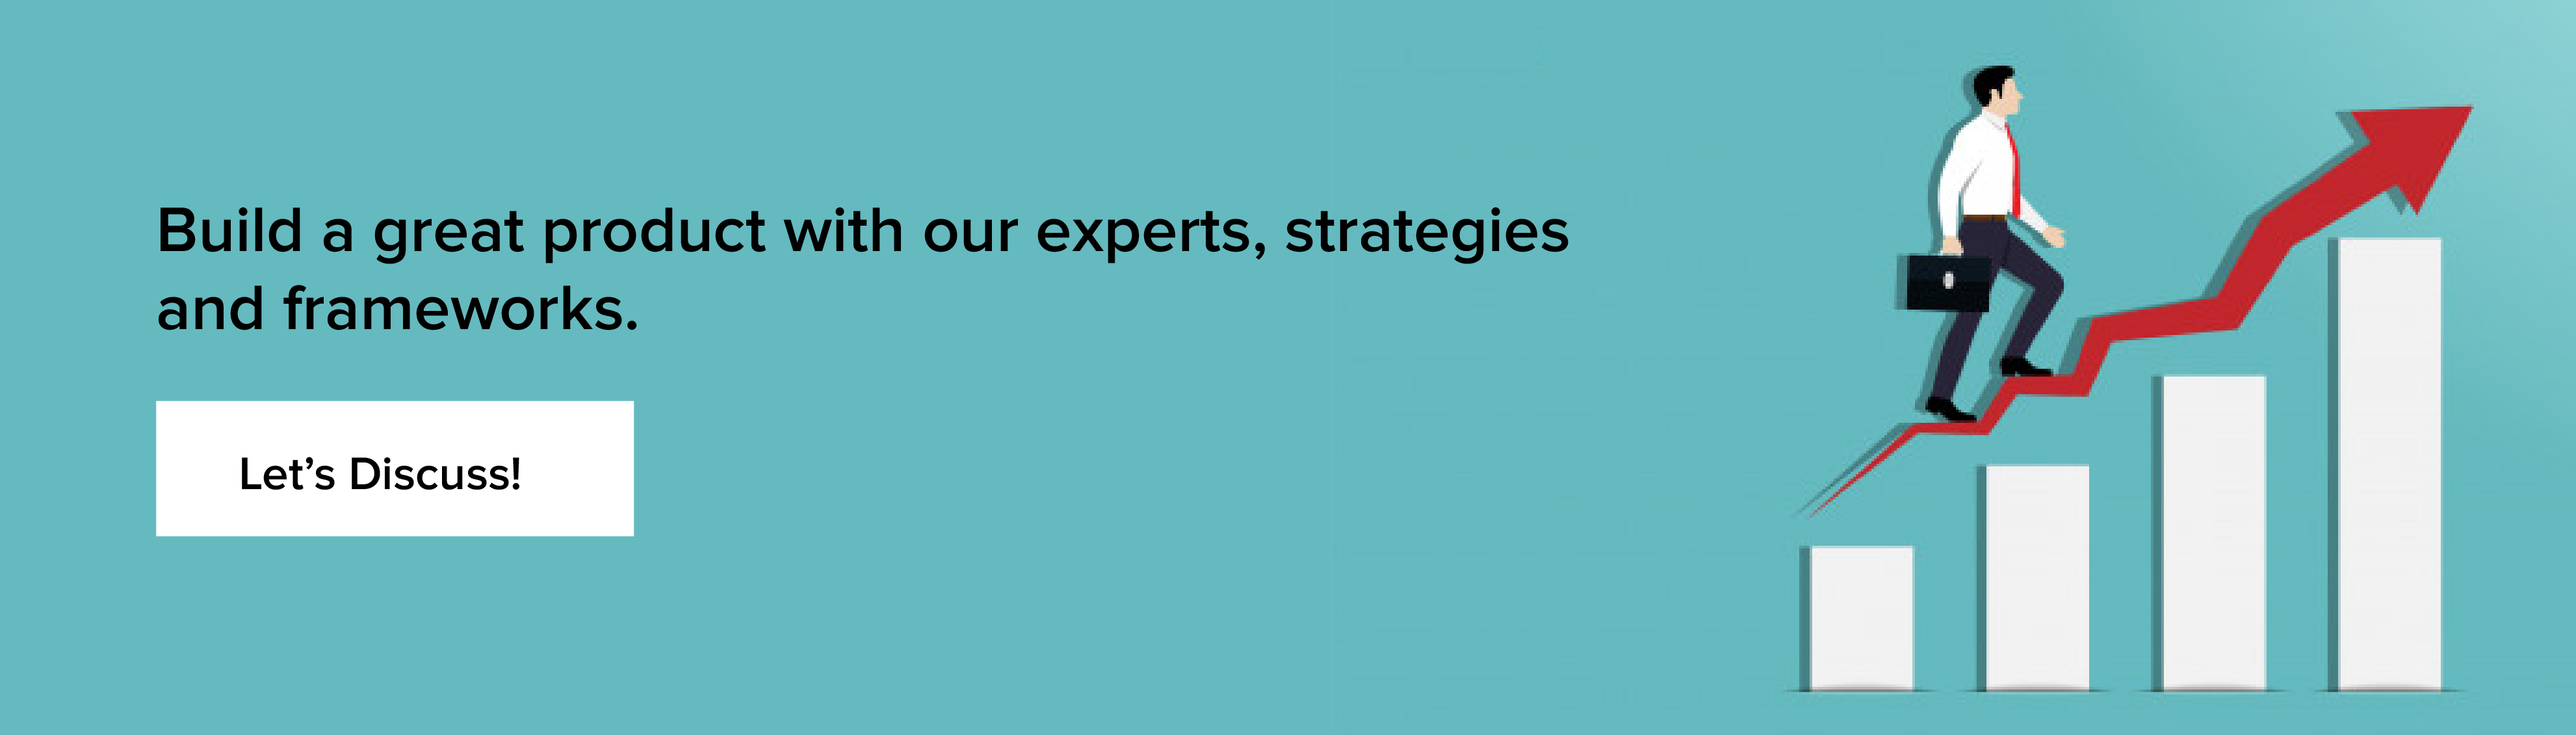 Build a great product with our experts